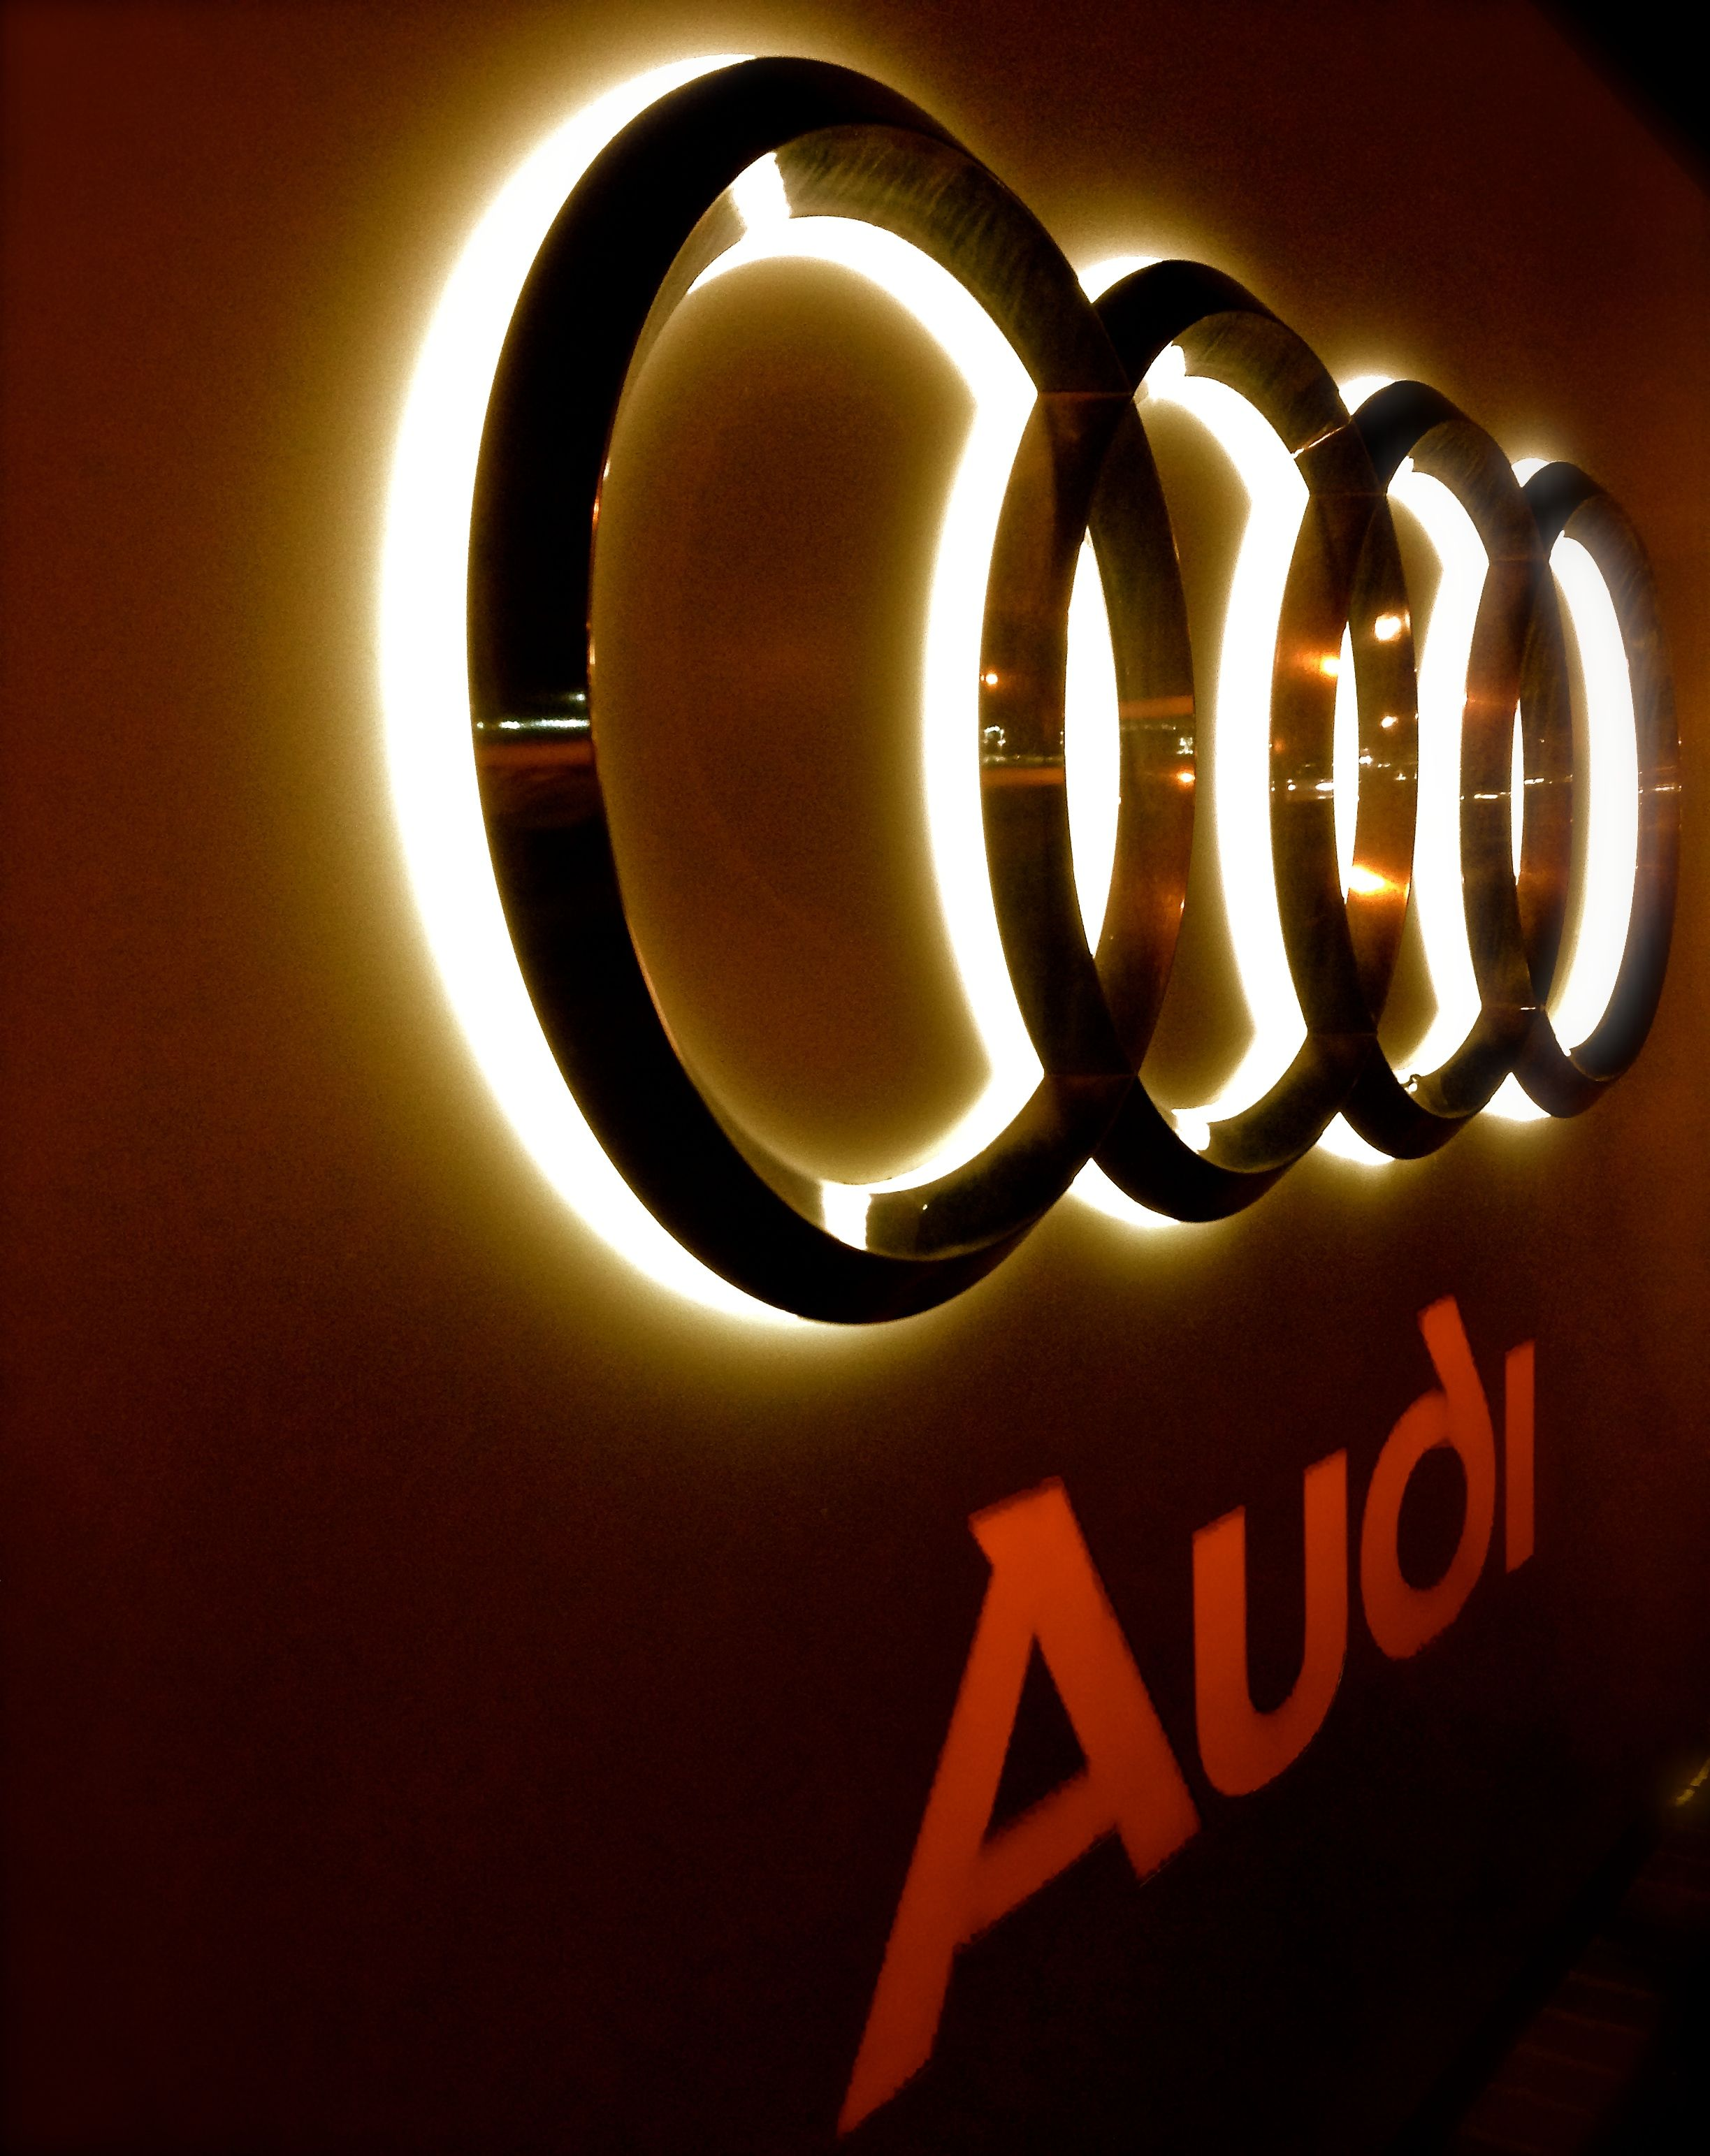 The Audi Logo Has A Very Cool Effect Style Of Life Pinterest - Audi logo